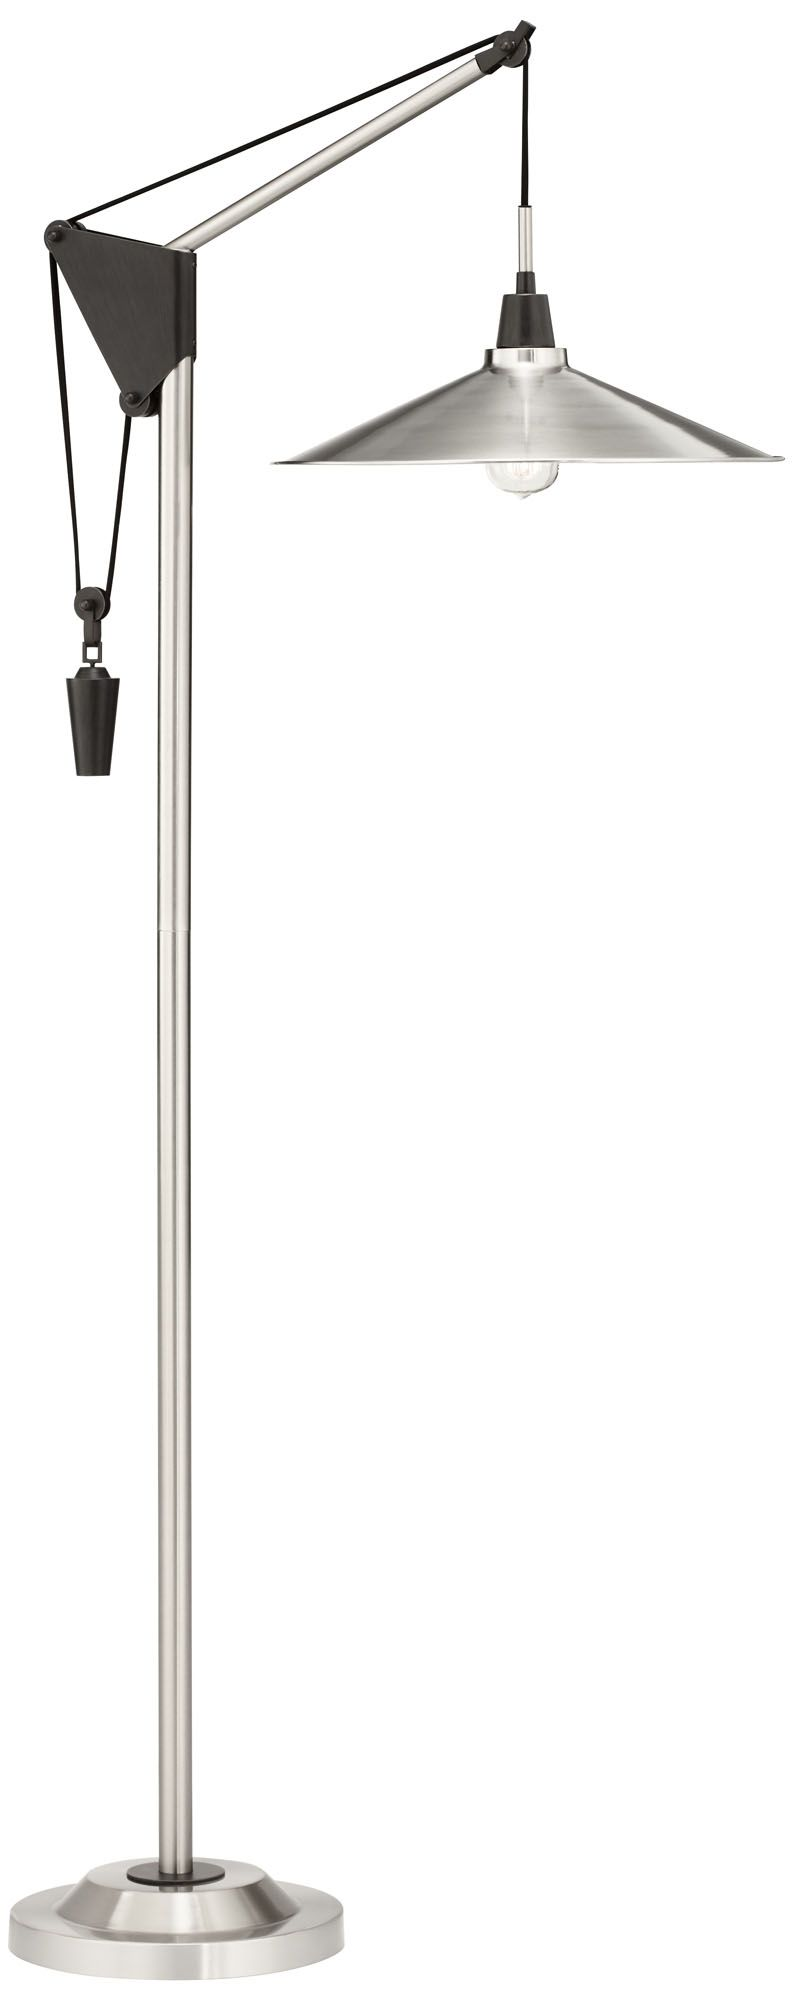 The Chronicle Brushed Nickel Adjustable Pulley Floor Lamp